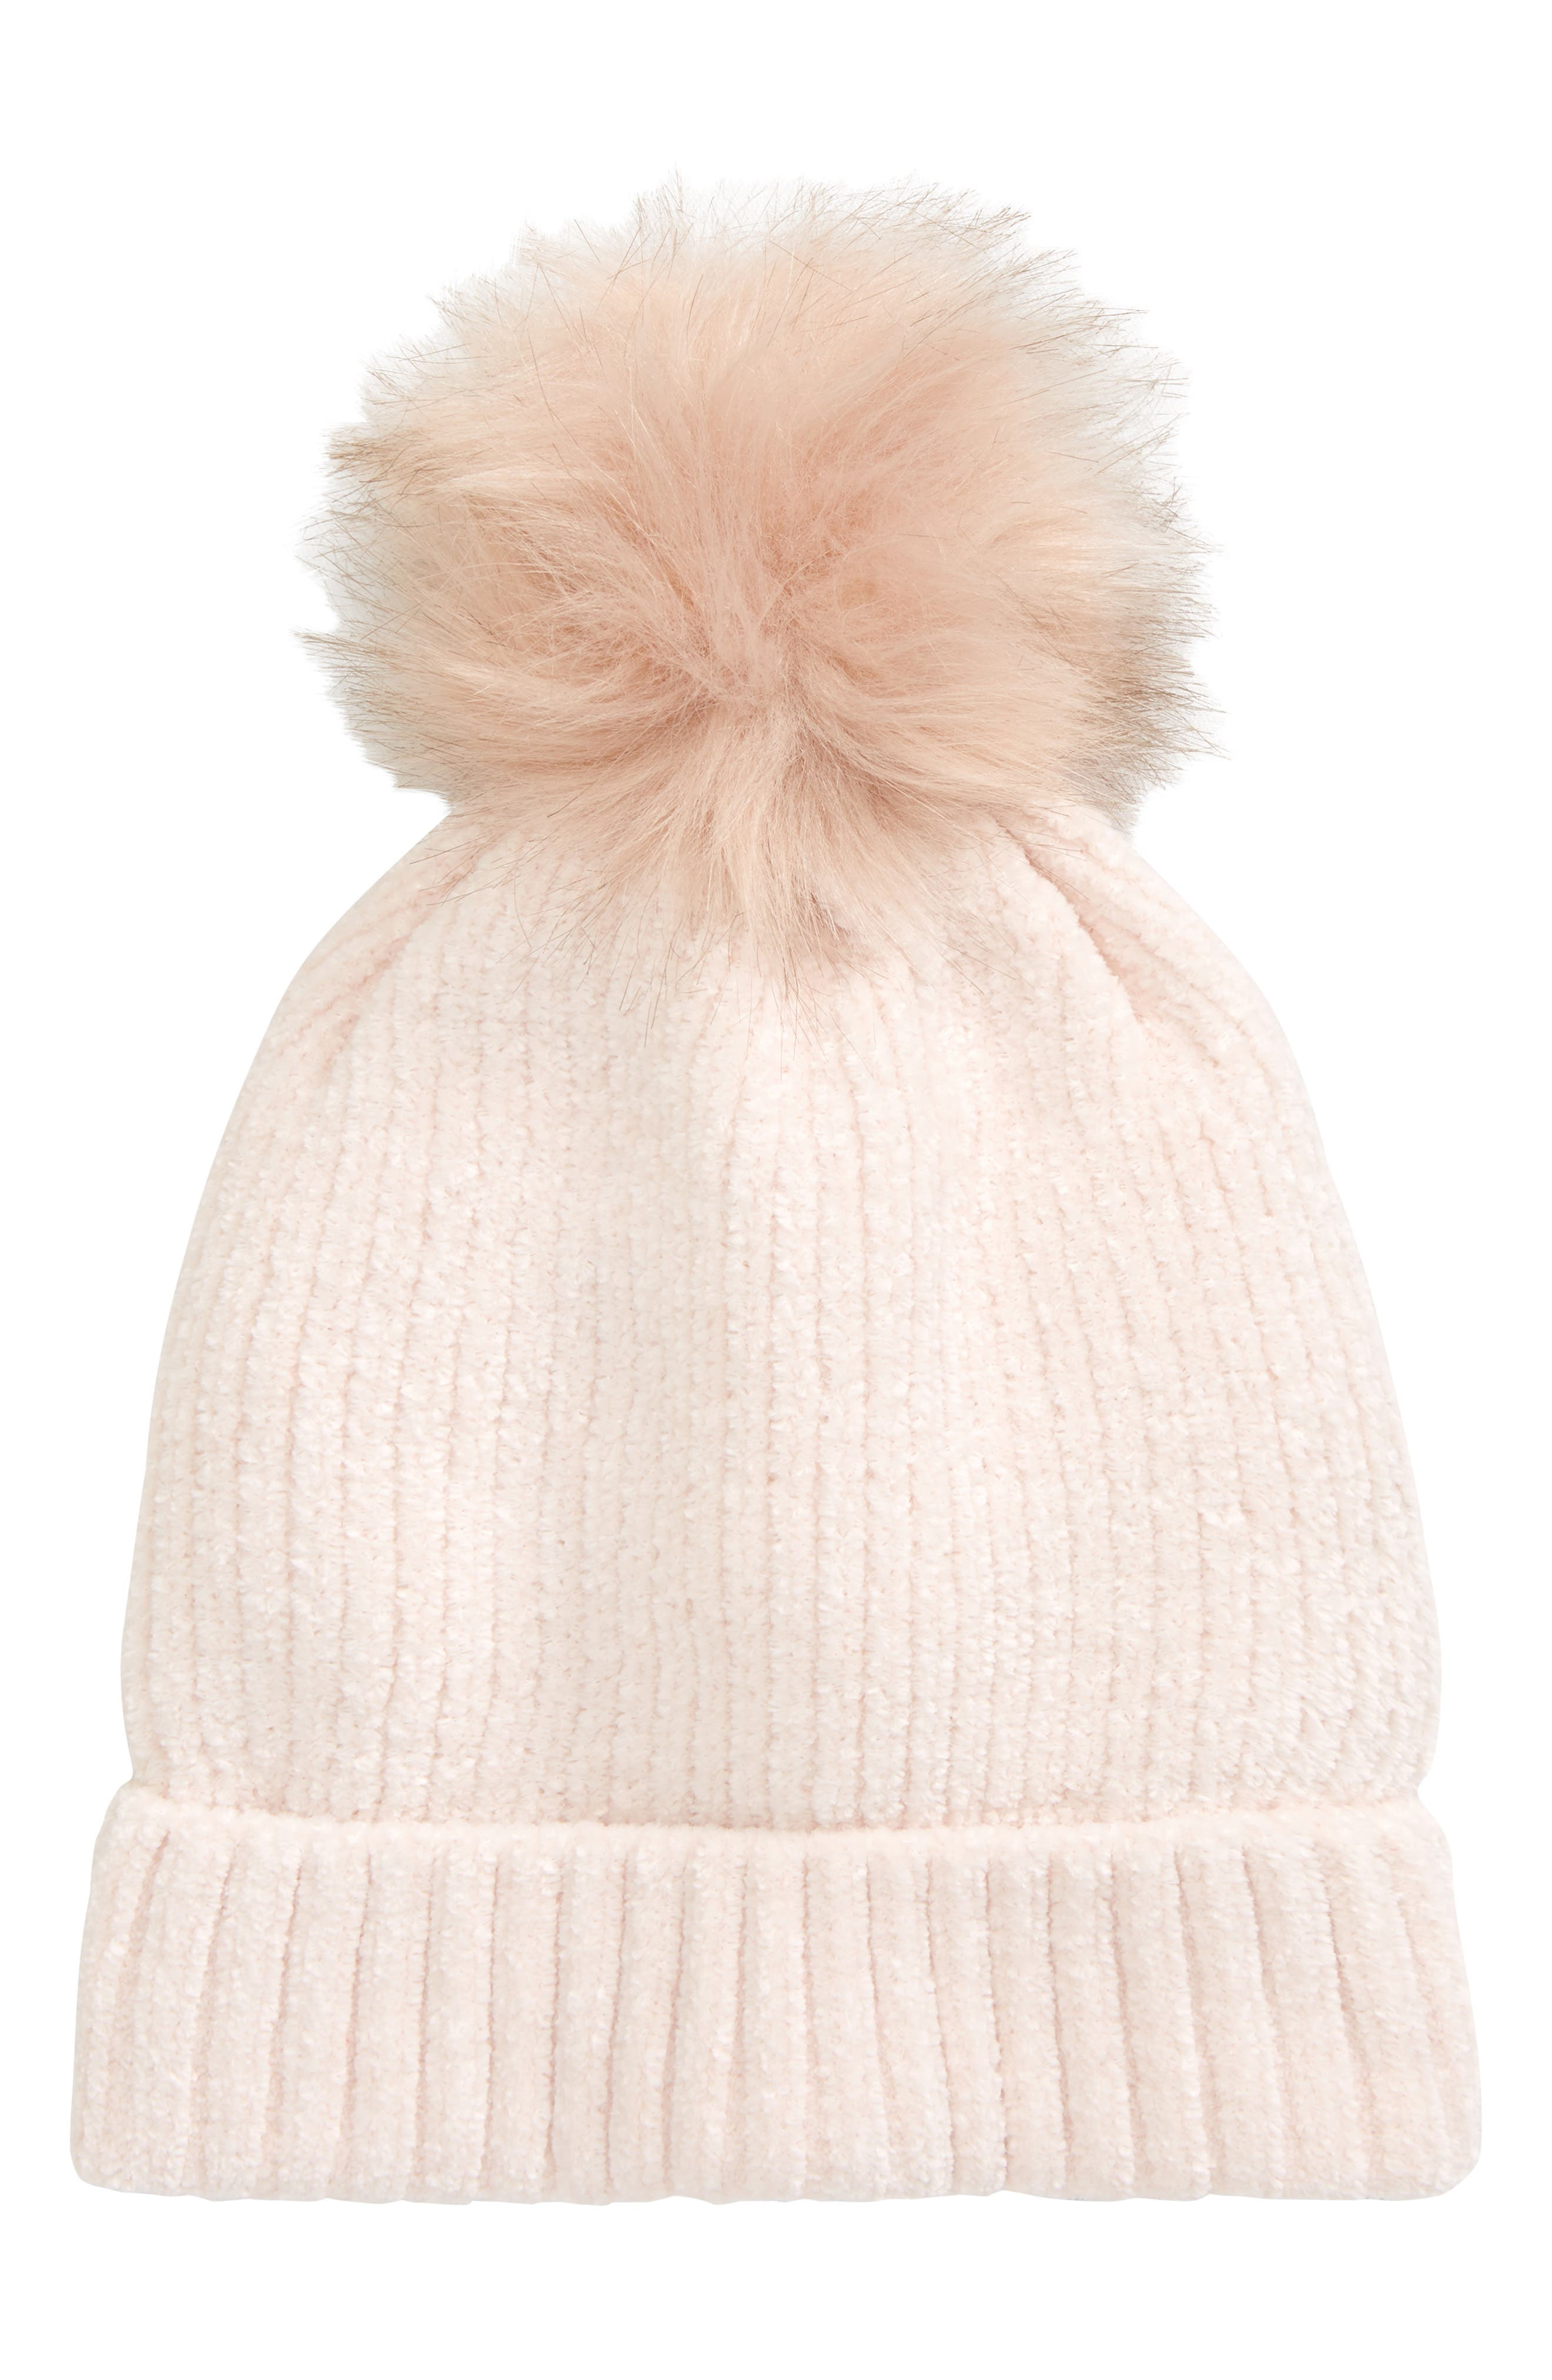 Ribbed-knit chenille adds cozy texture to a cold-weather hat topped with a fun faux-fur pompom. Style Name: Tucker + Tate Kids\\\' Chenille Faux Fur Pompom Beanie (Big Girl). Style Number: 6095715. Available in stores.